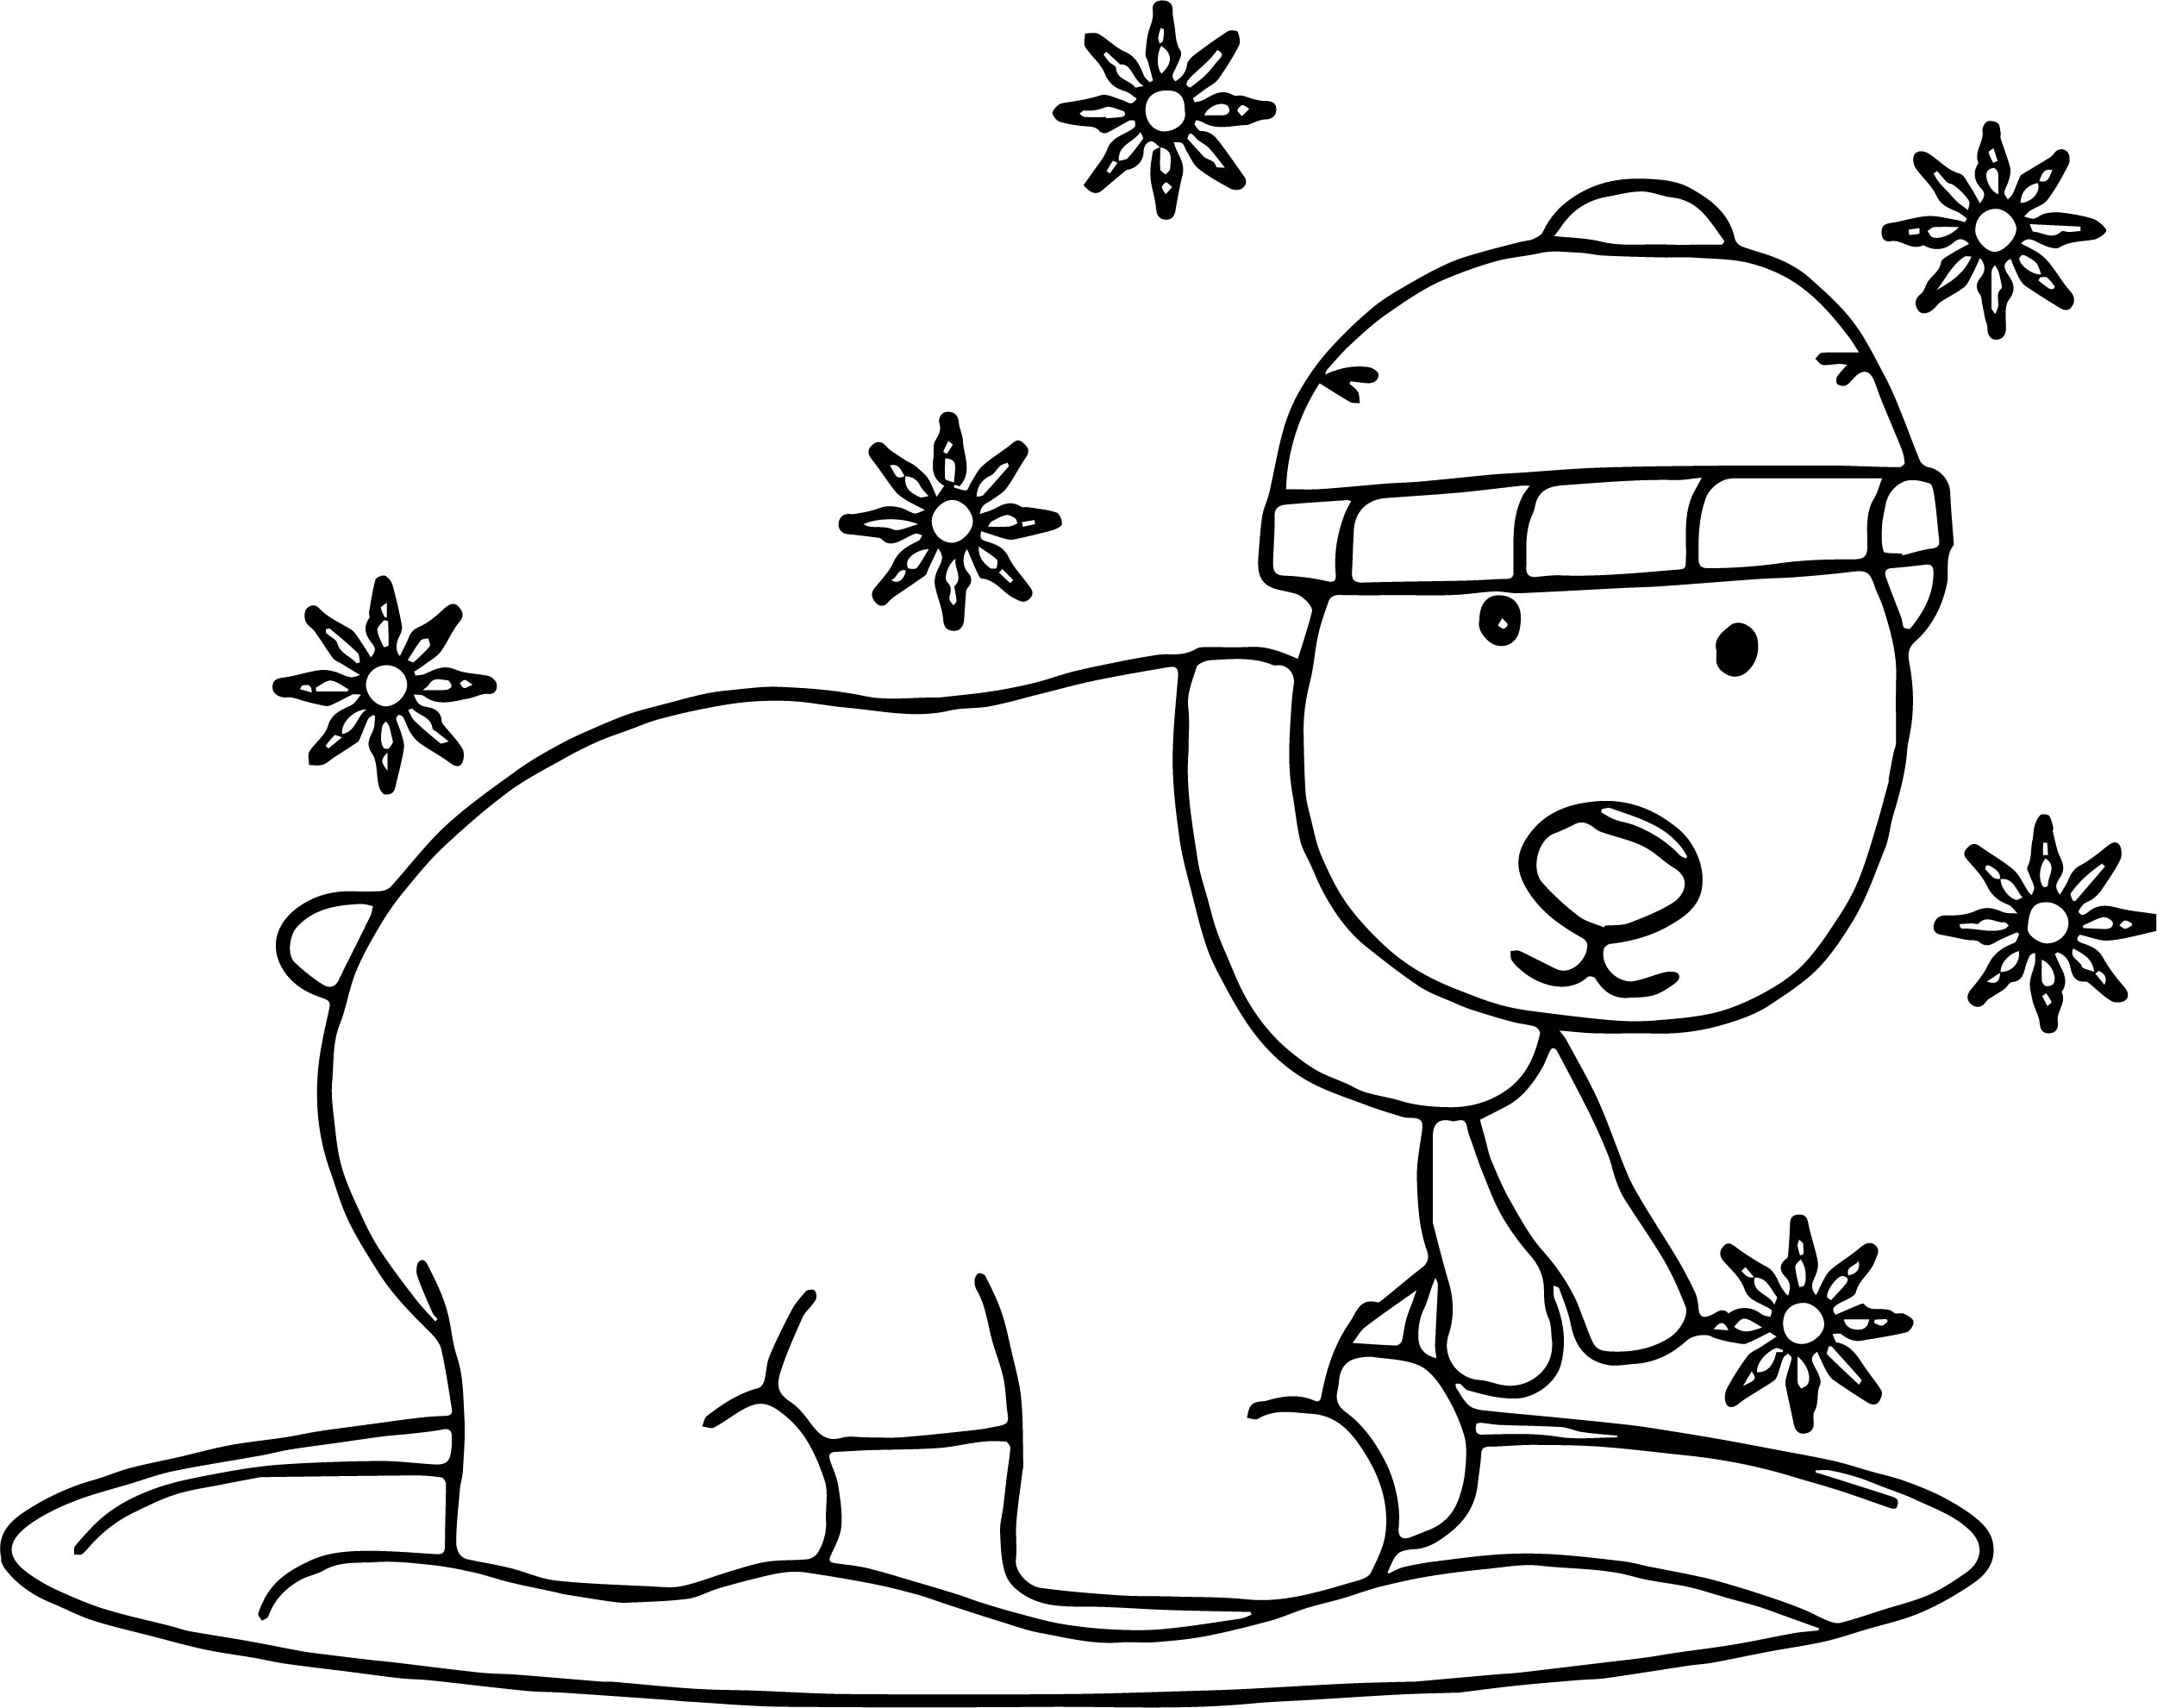 This is an image of Fabulous Snow Coloring Page